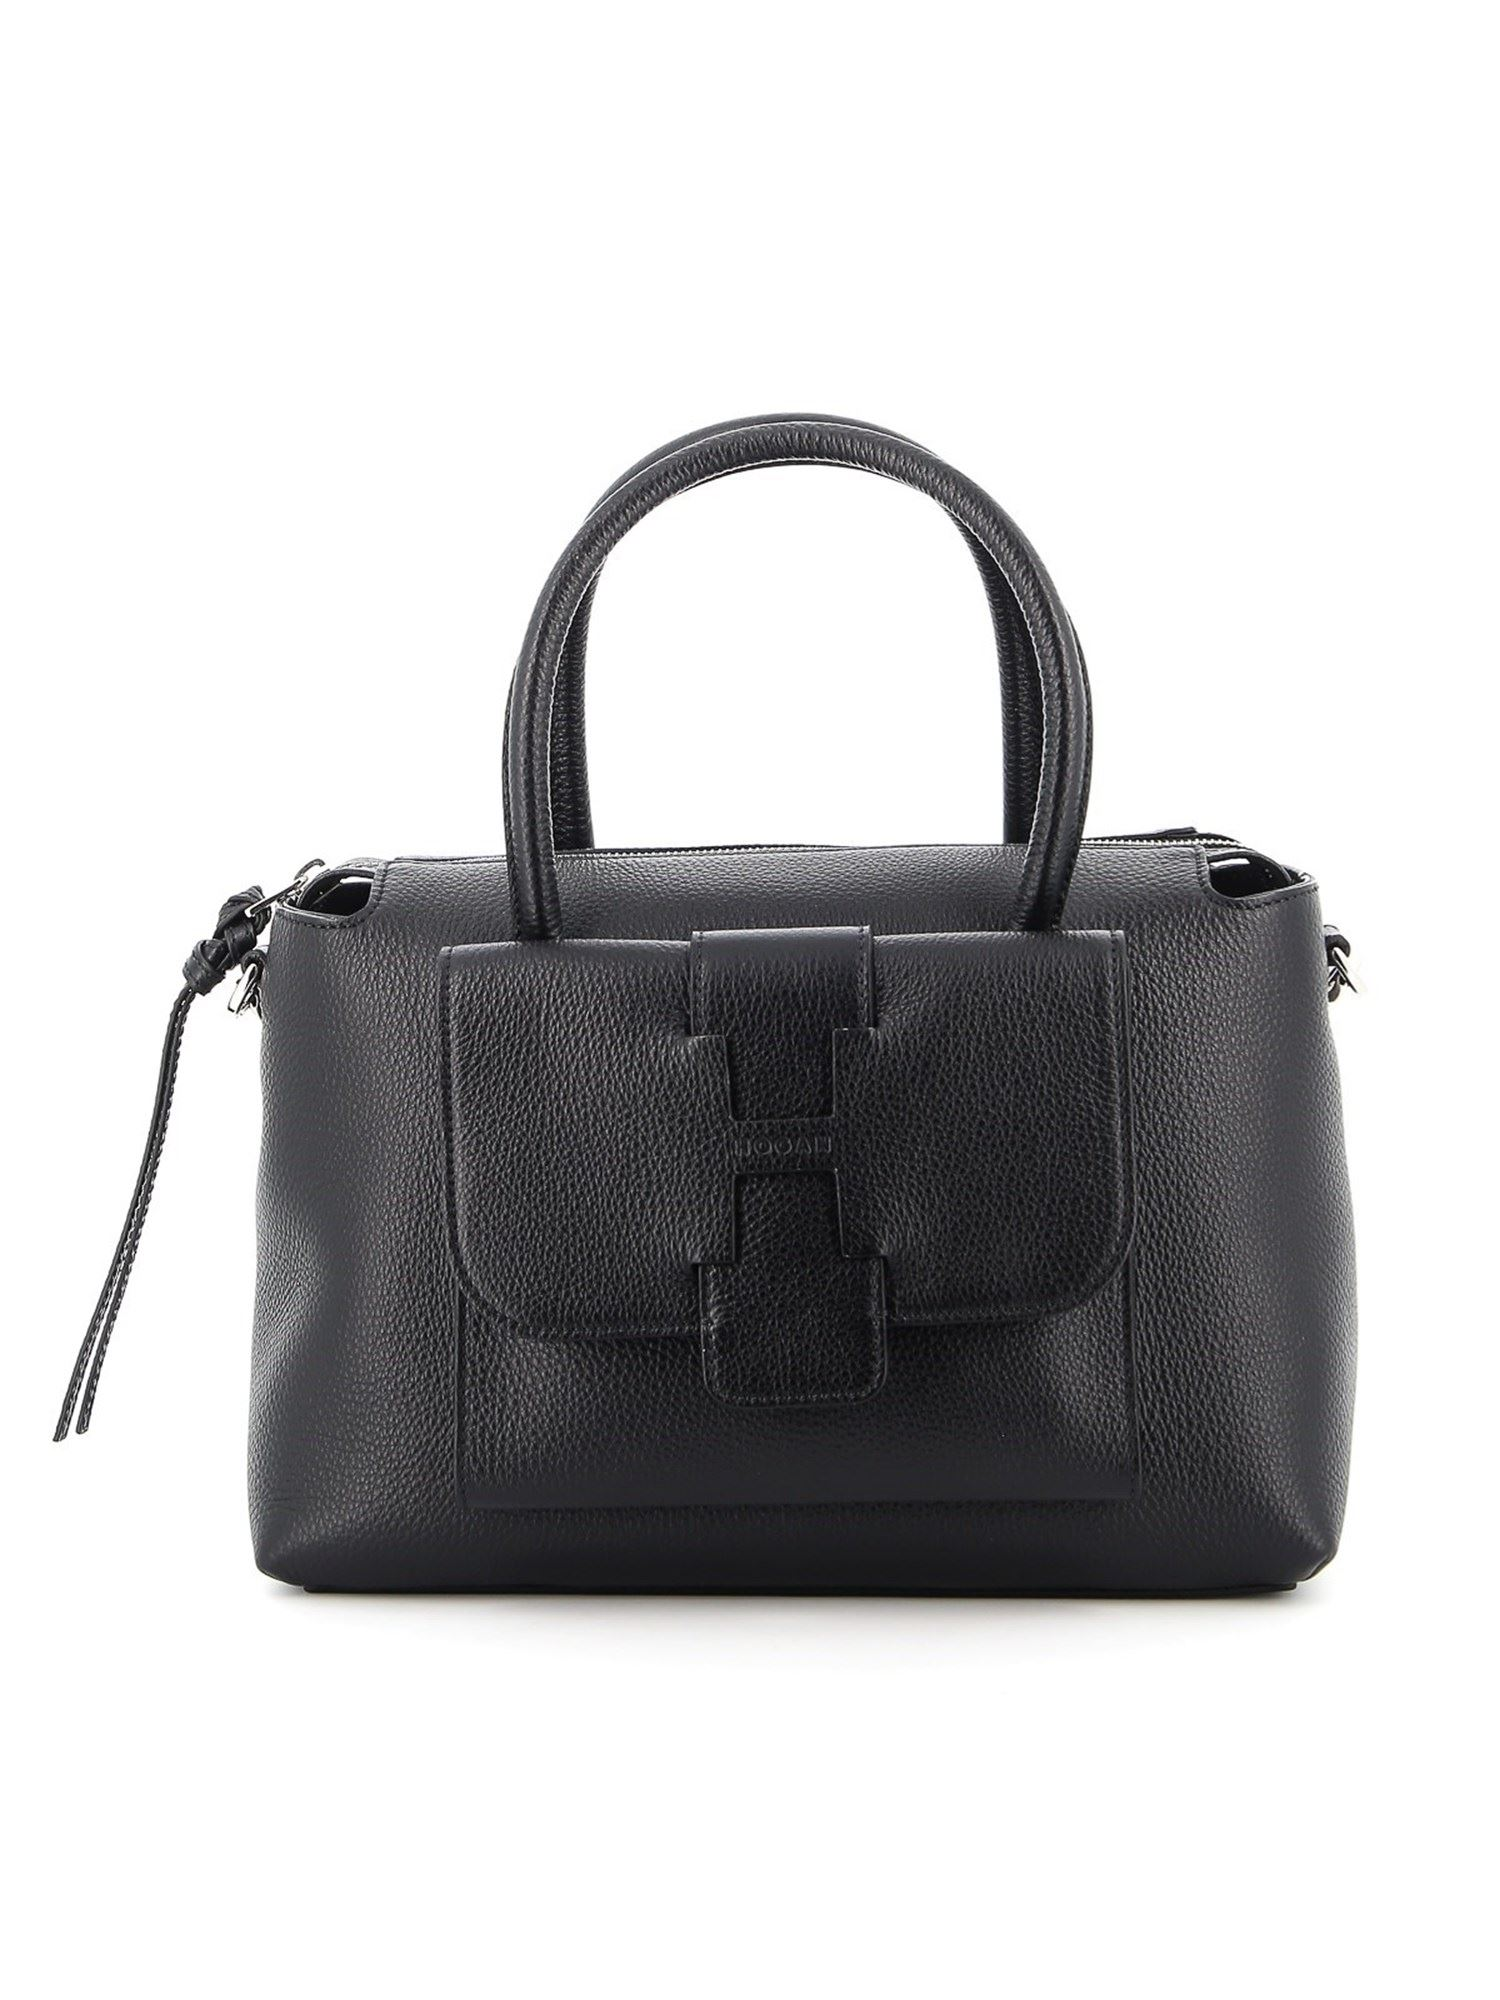 Hogan HAMMERED LEATHER SMALL BOWLING BAG IN BLACK